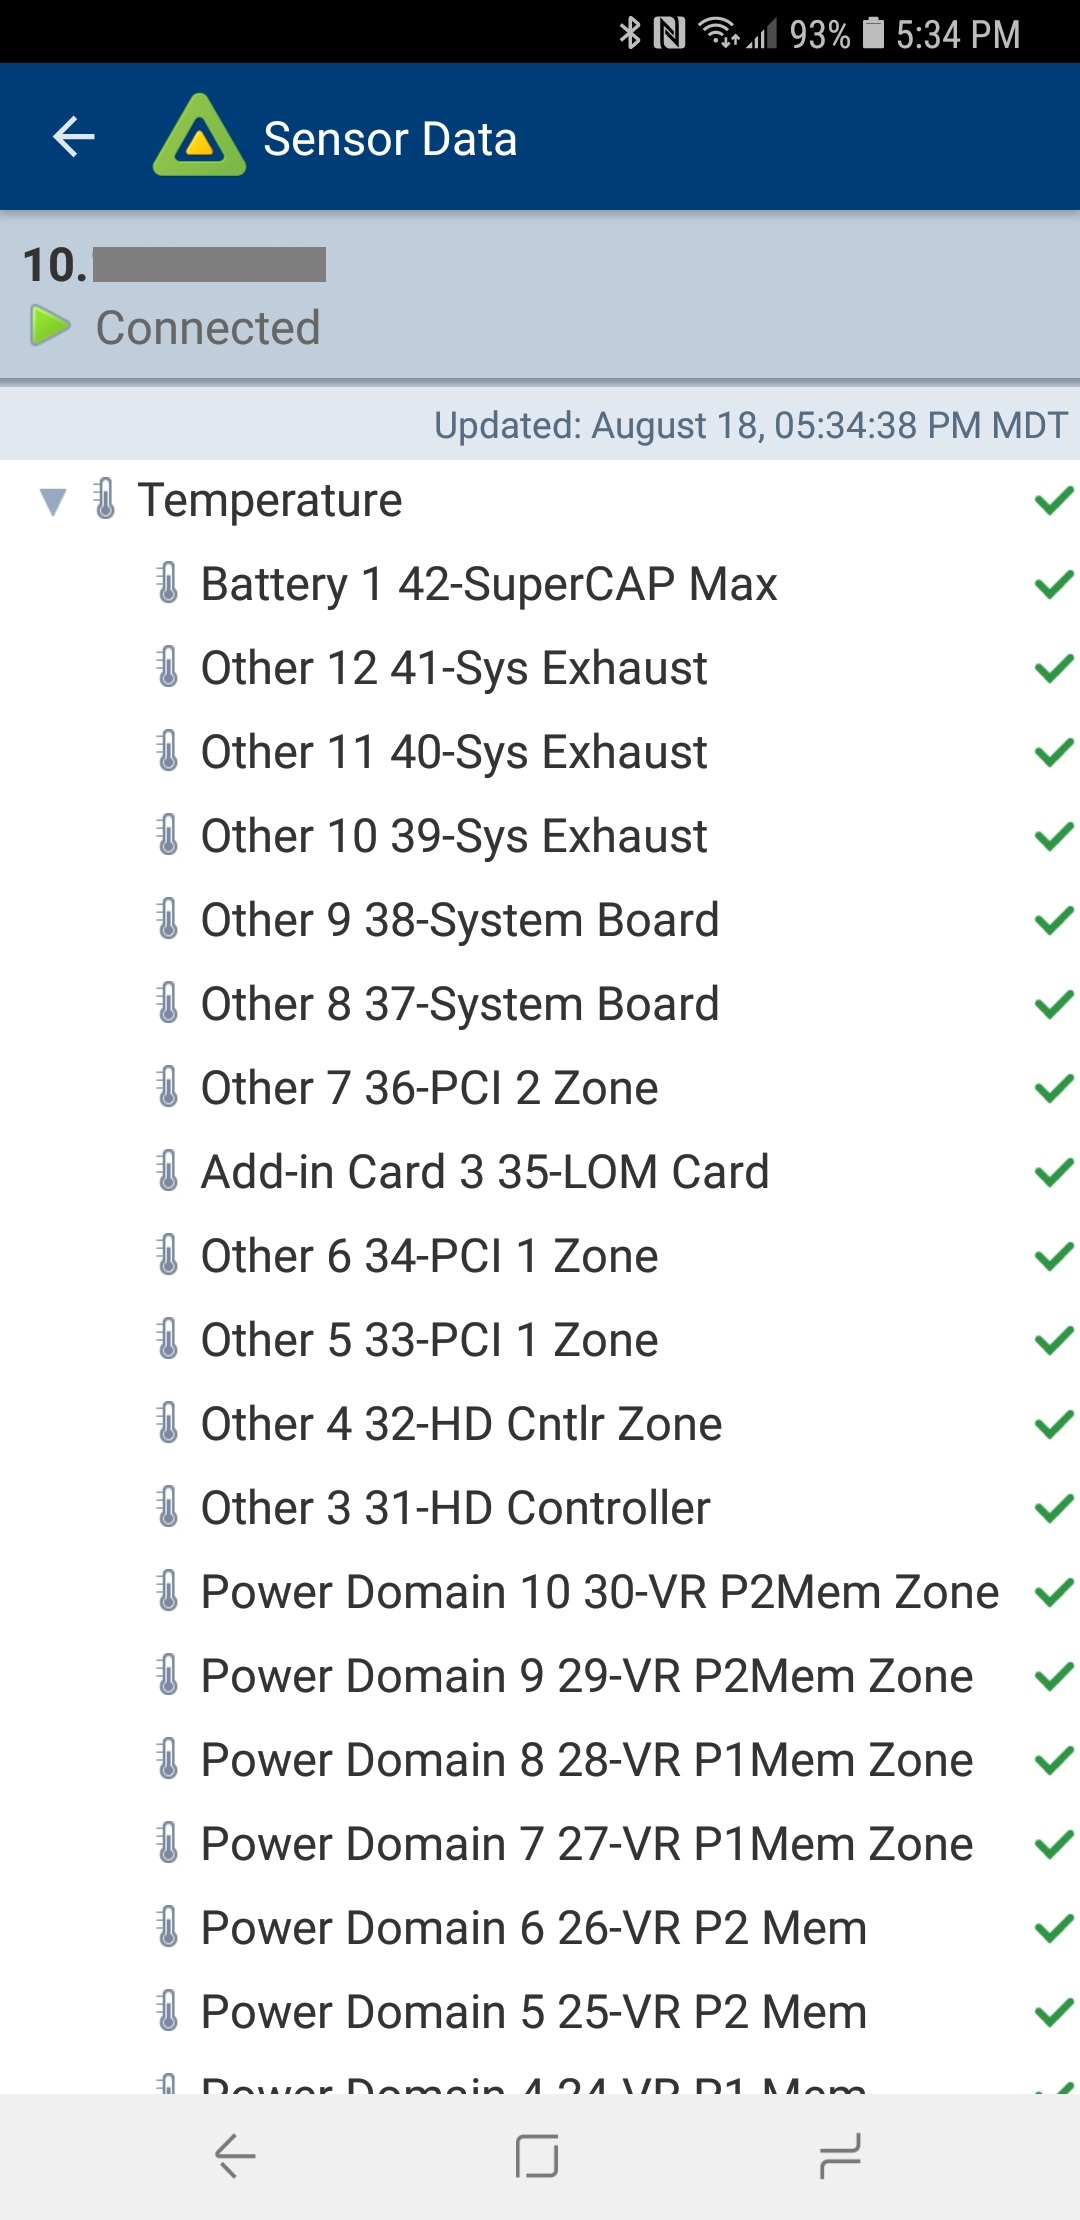 ESXi Archives - The time I've wasted on technology